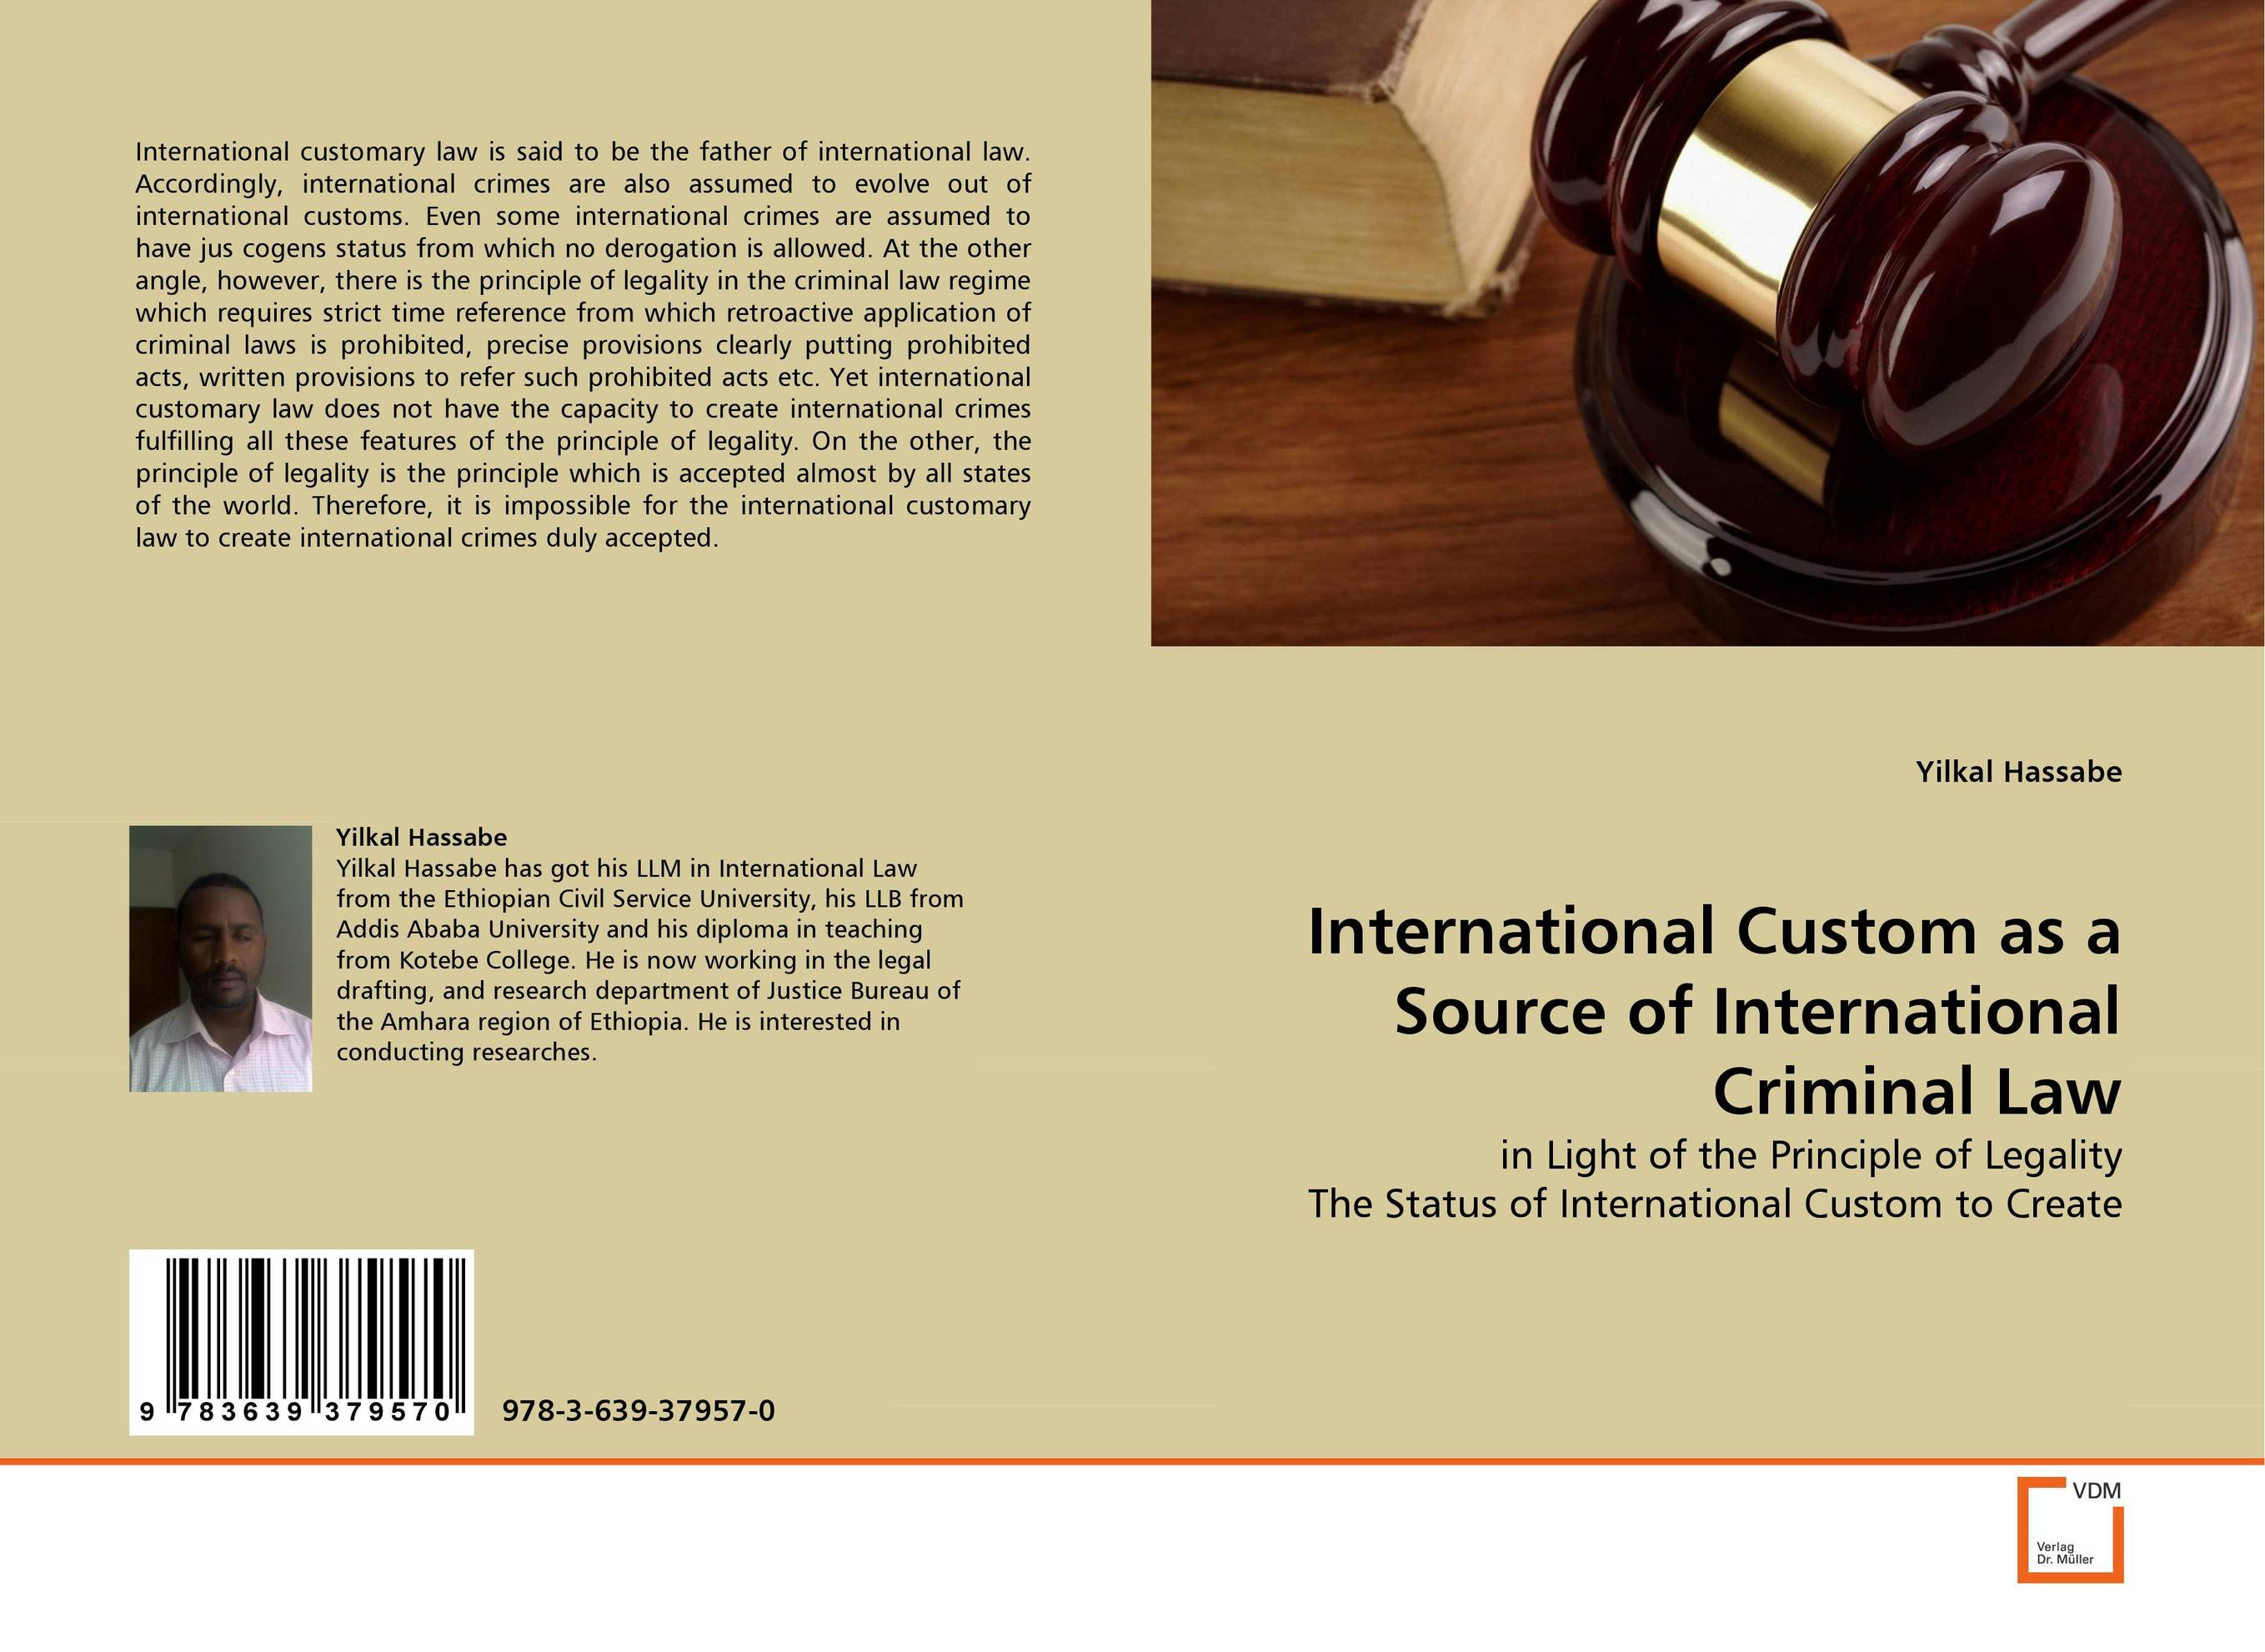 International Custom as a Source of International Criminal Law